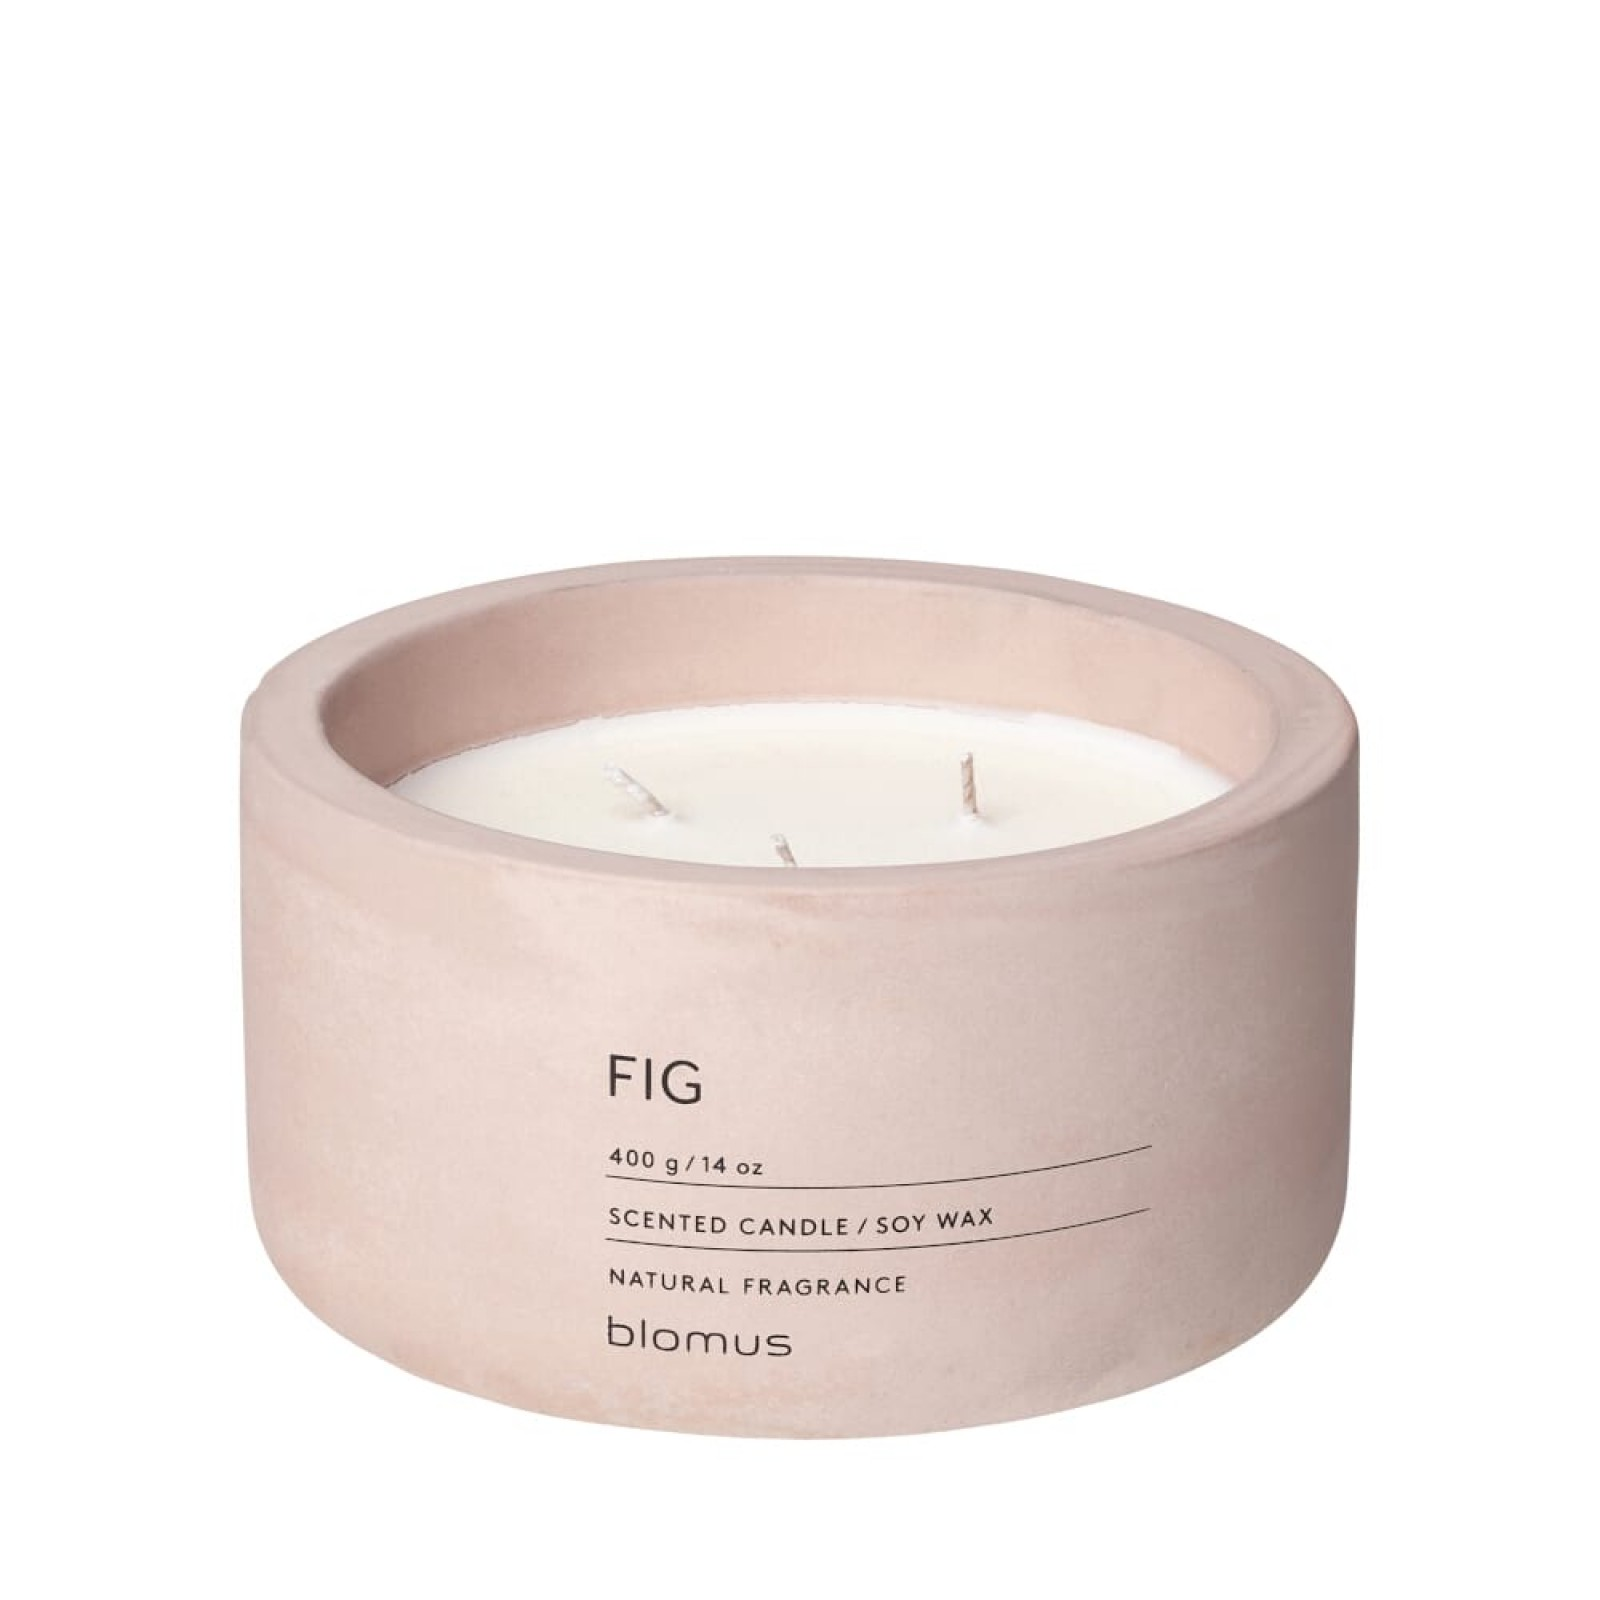 Scented Candle FRAGA XL Fig - Blomus